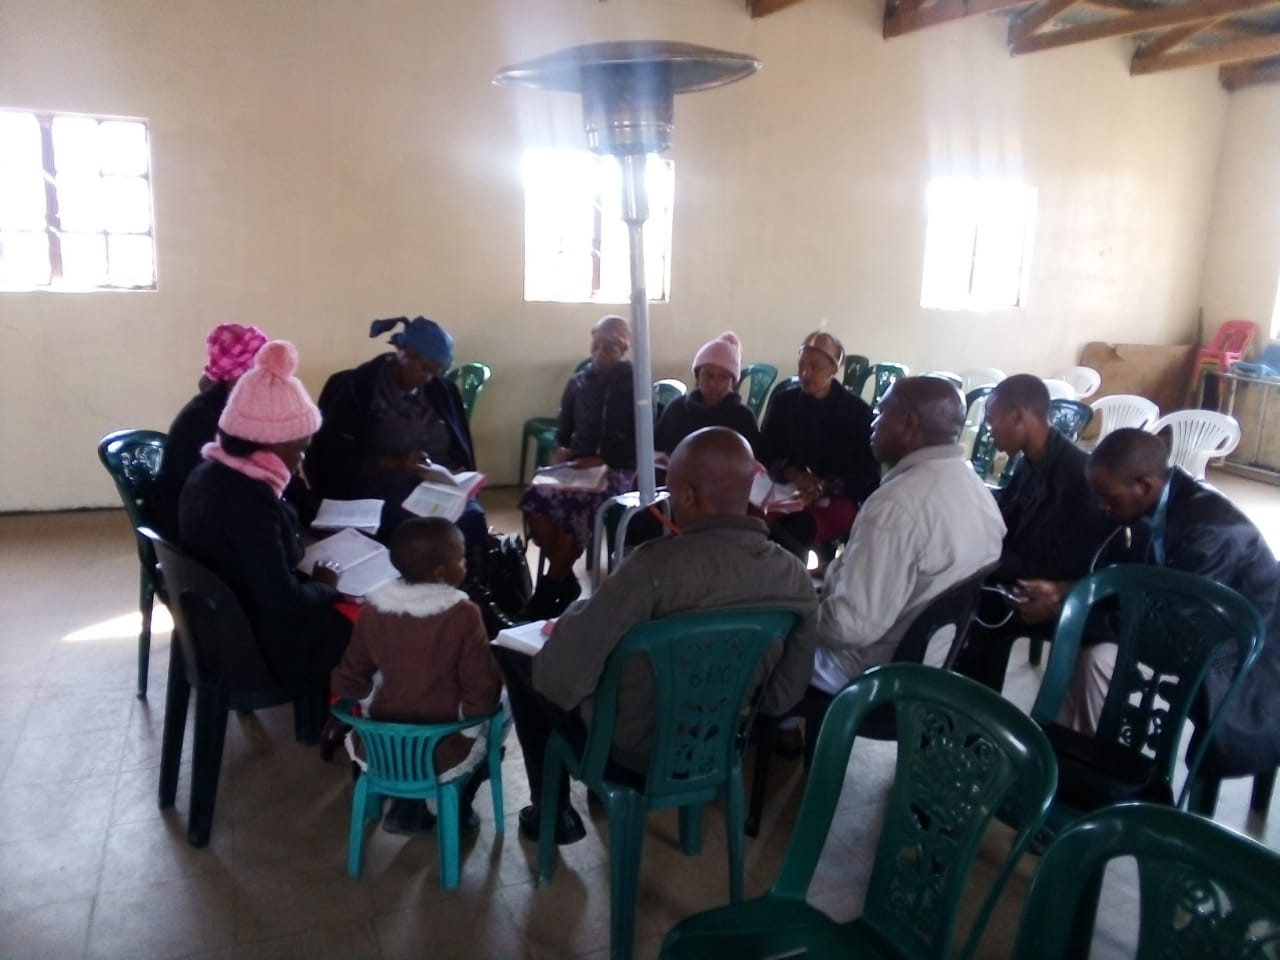 Lesotho group 2019 07 07 at 10.39.55